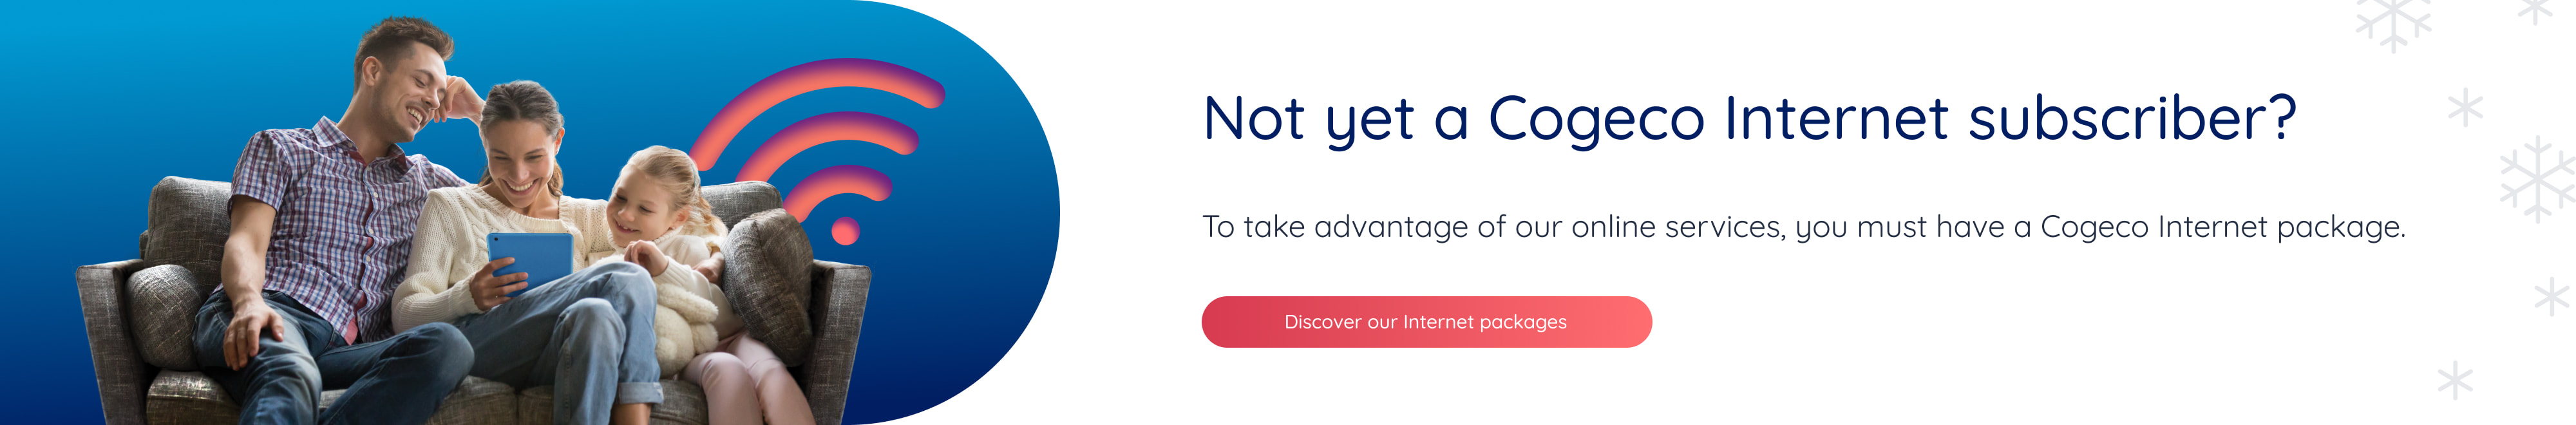 Not yet a Cogeco Internet subscriber? To take advantage of our online services, you must have a Cogeco package. Discover our Internet packages